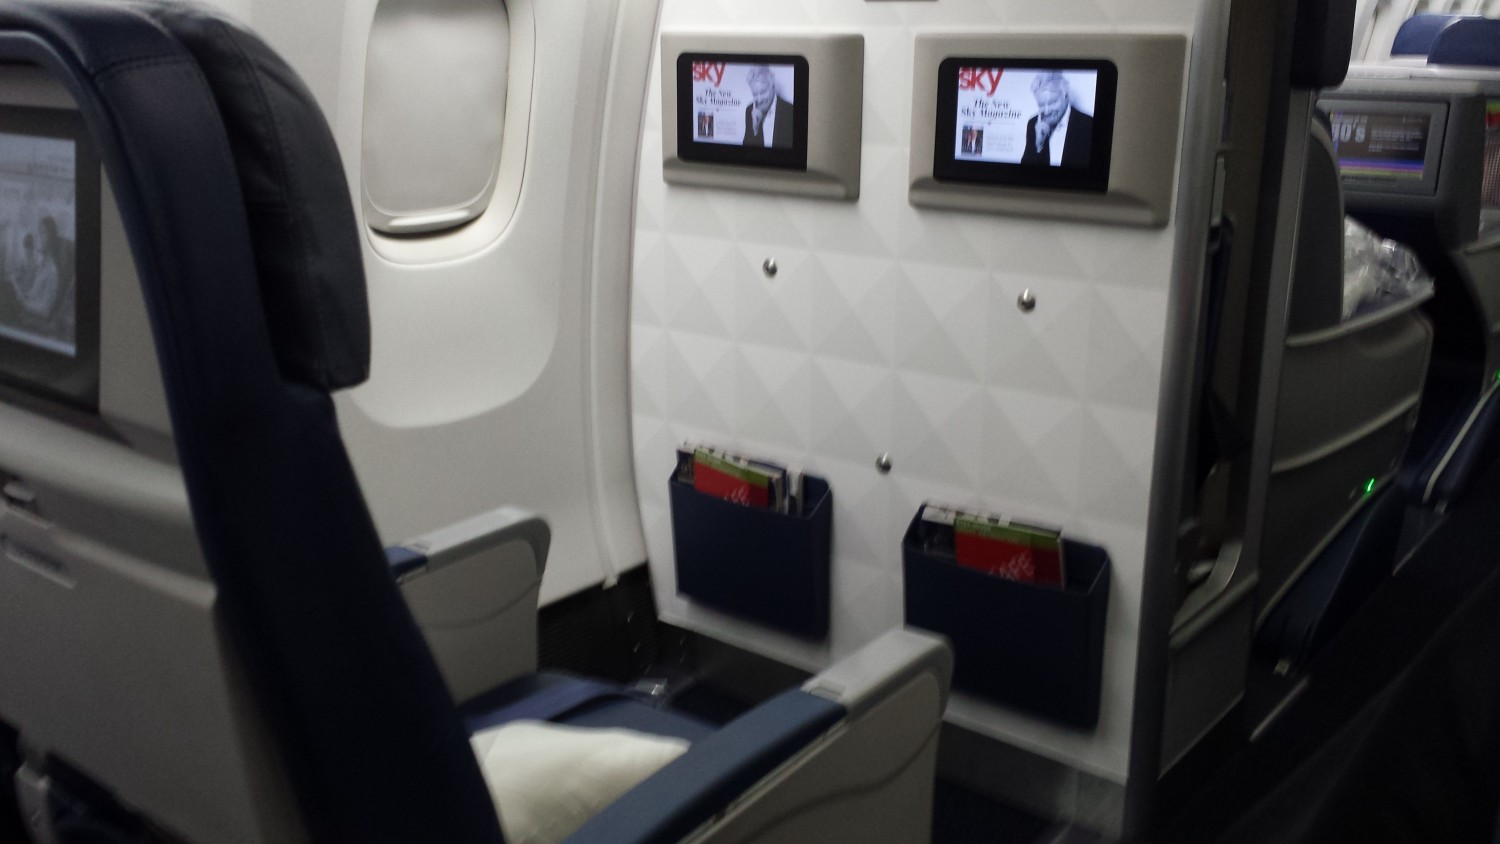 1A and 1B aboard Delta 767-300.